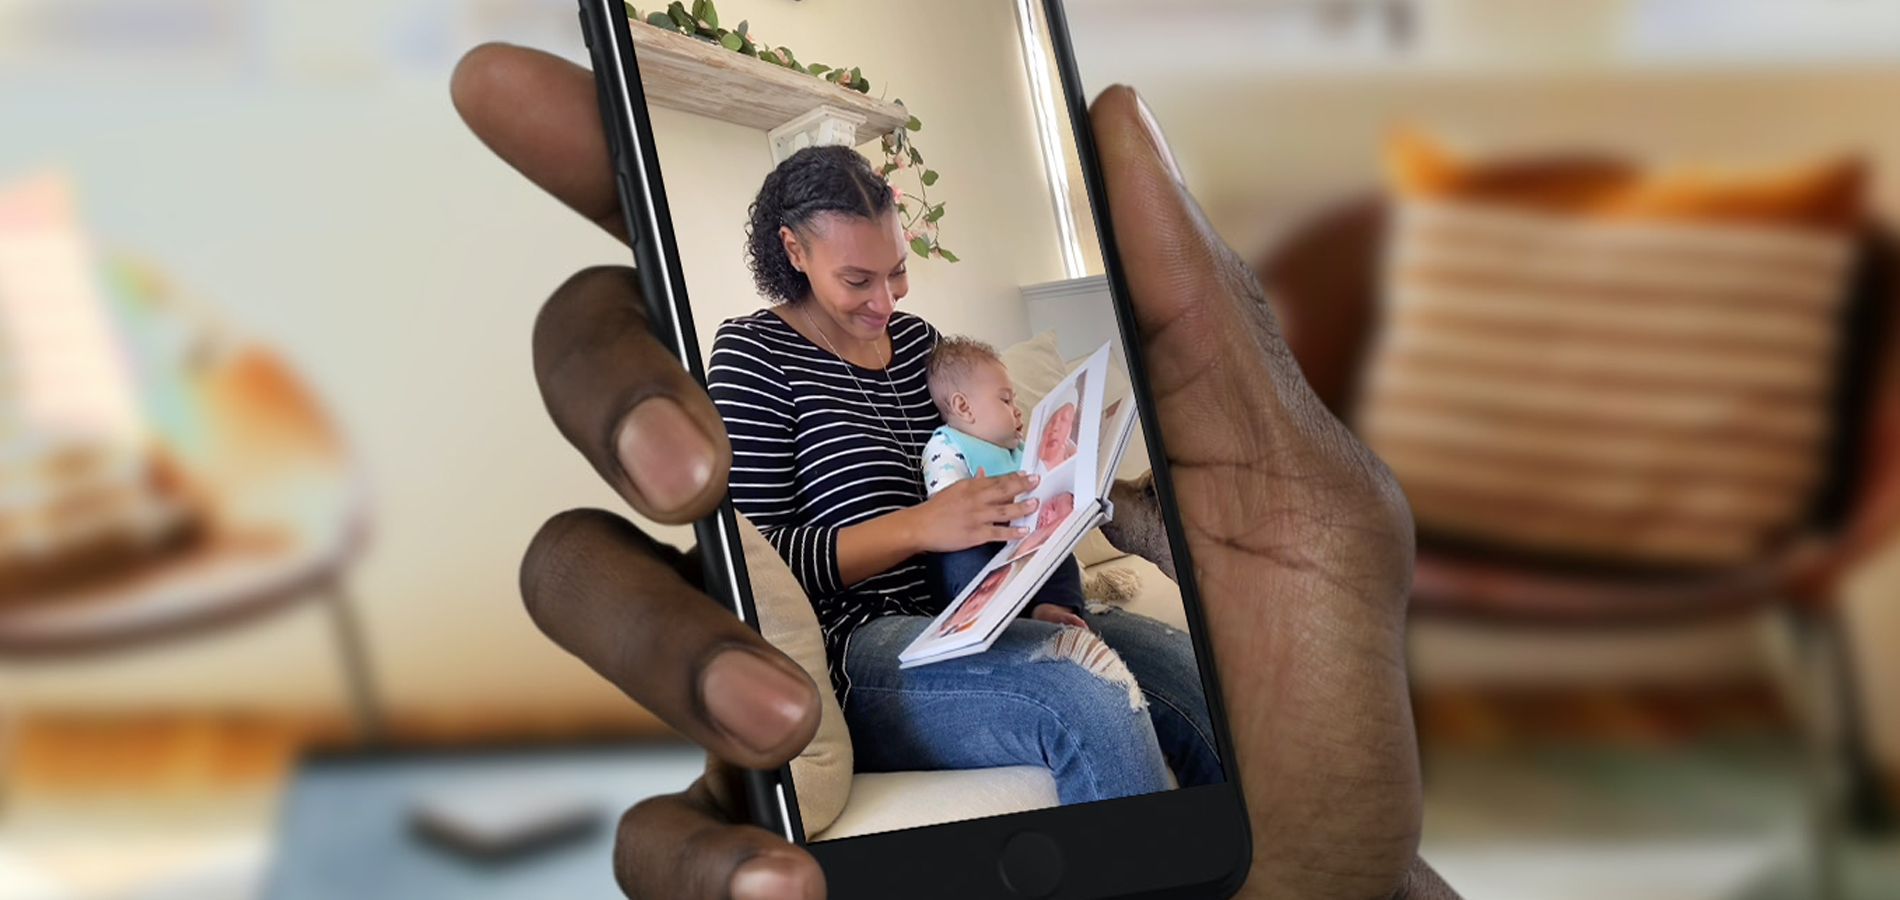 Hand holding phone for video chat with woman opening photo gift